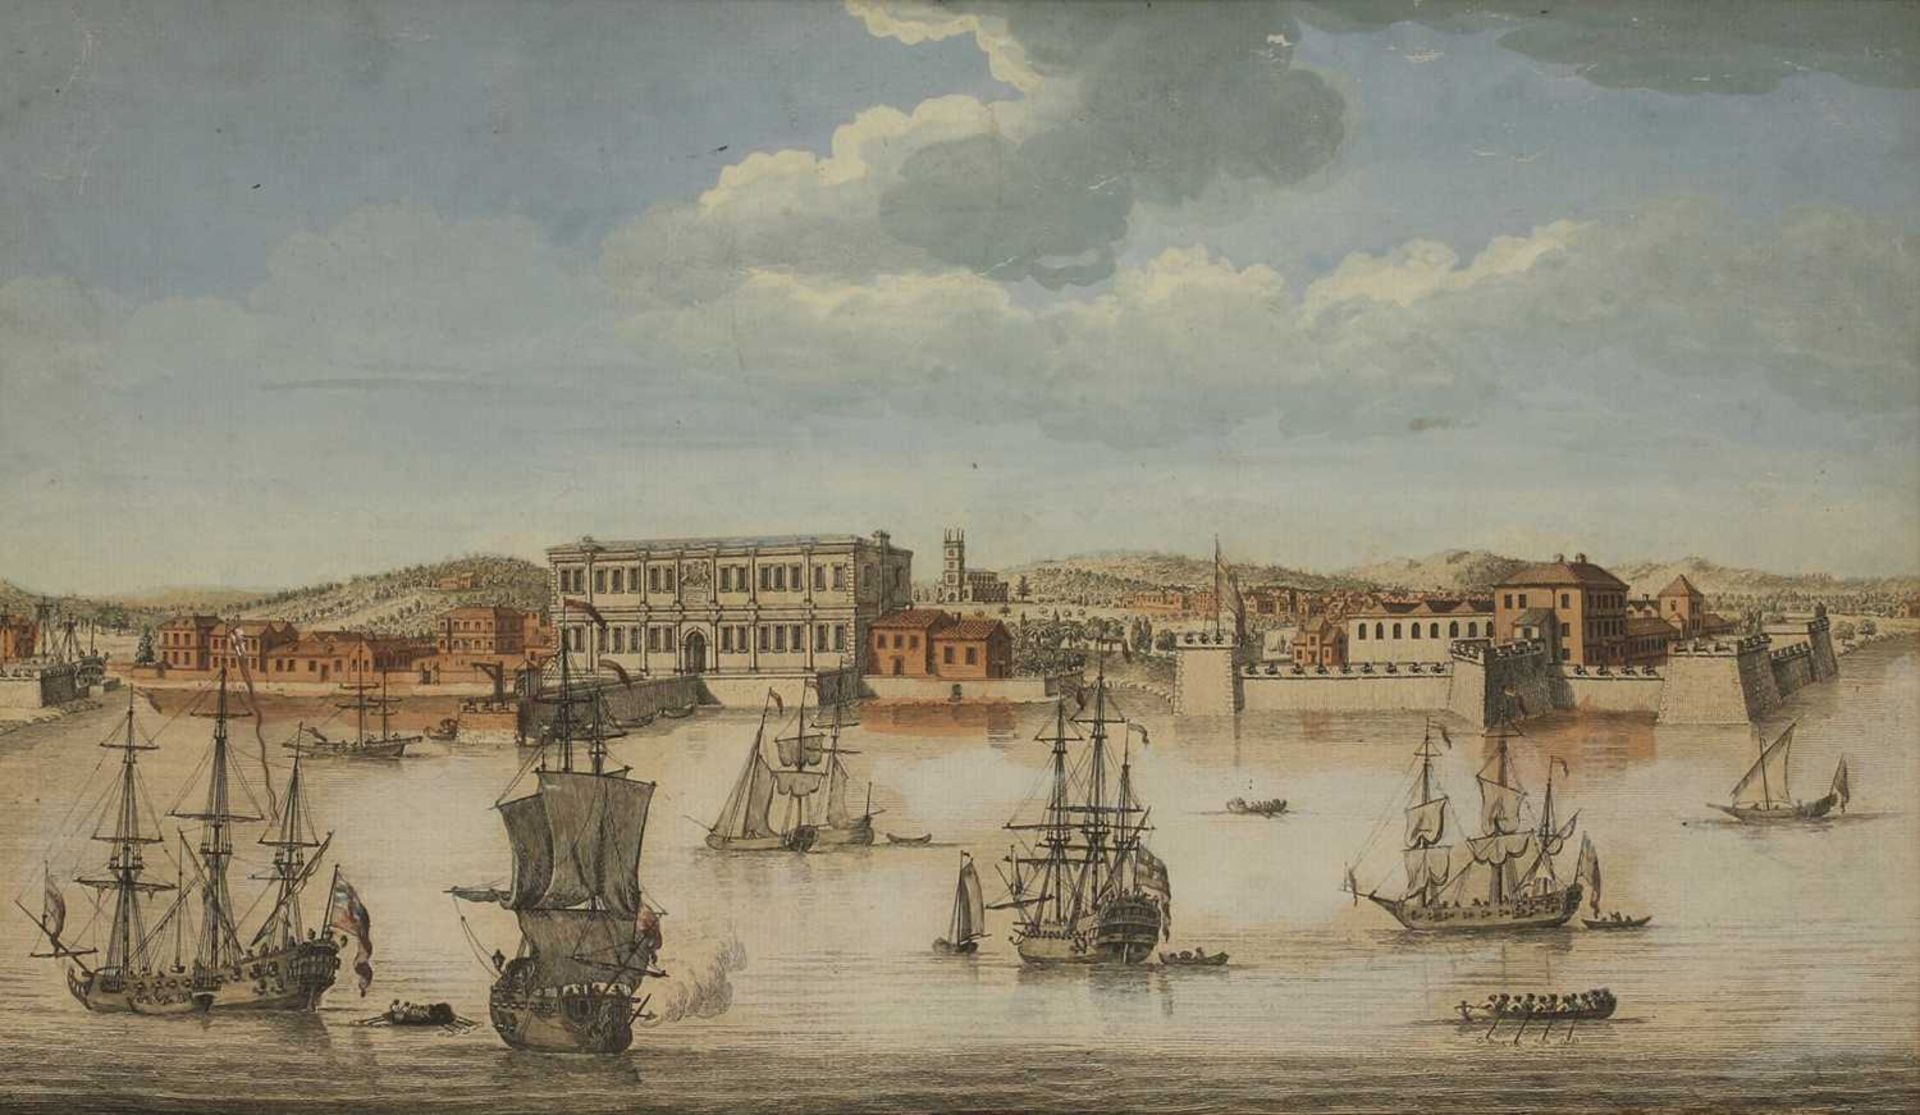 Jacques Rigaud (French, 1680-1754) - Image 2 of 16